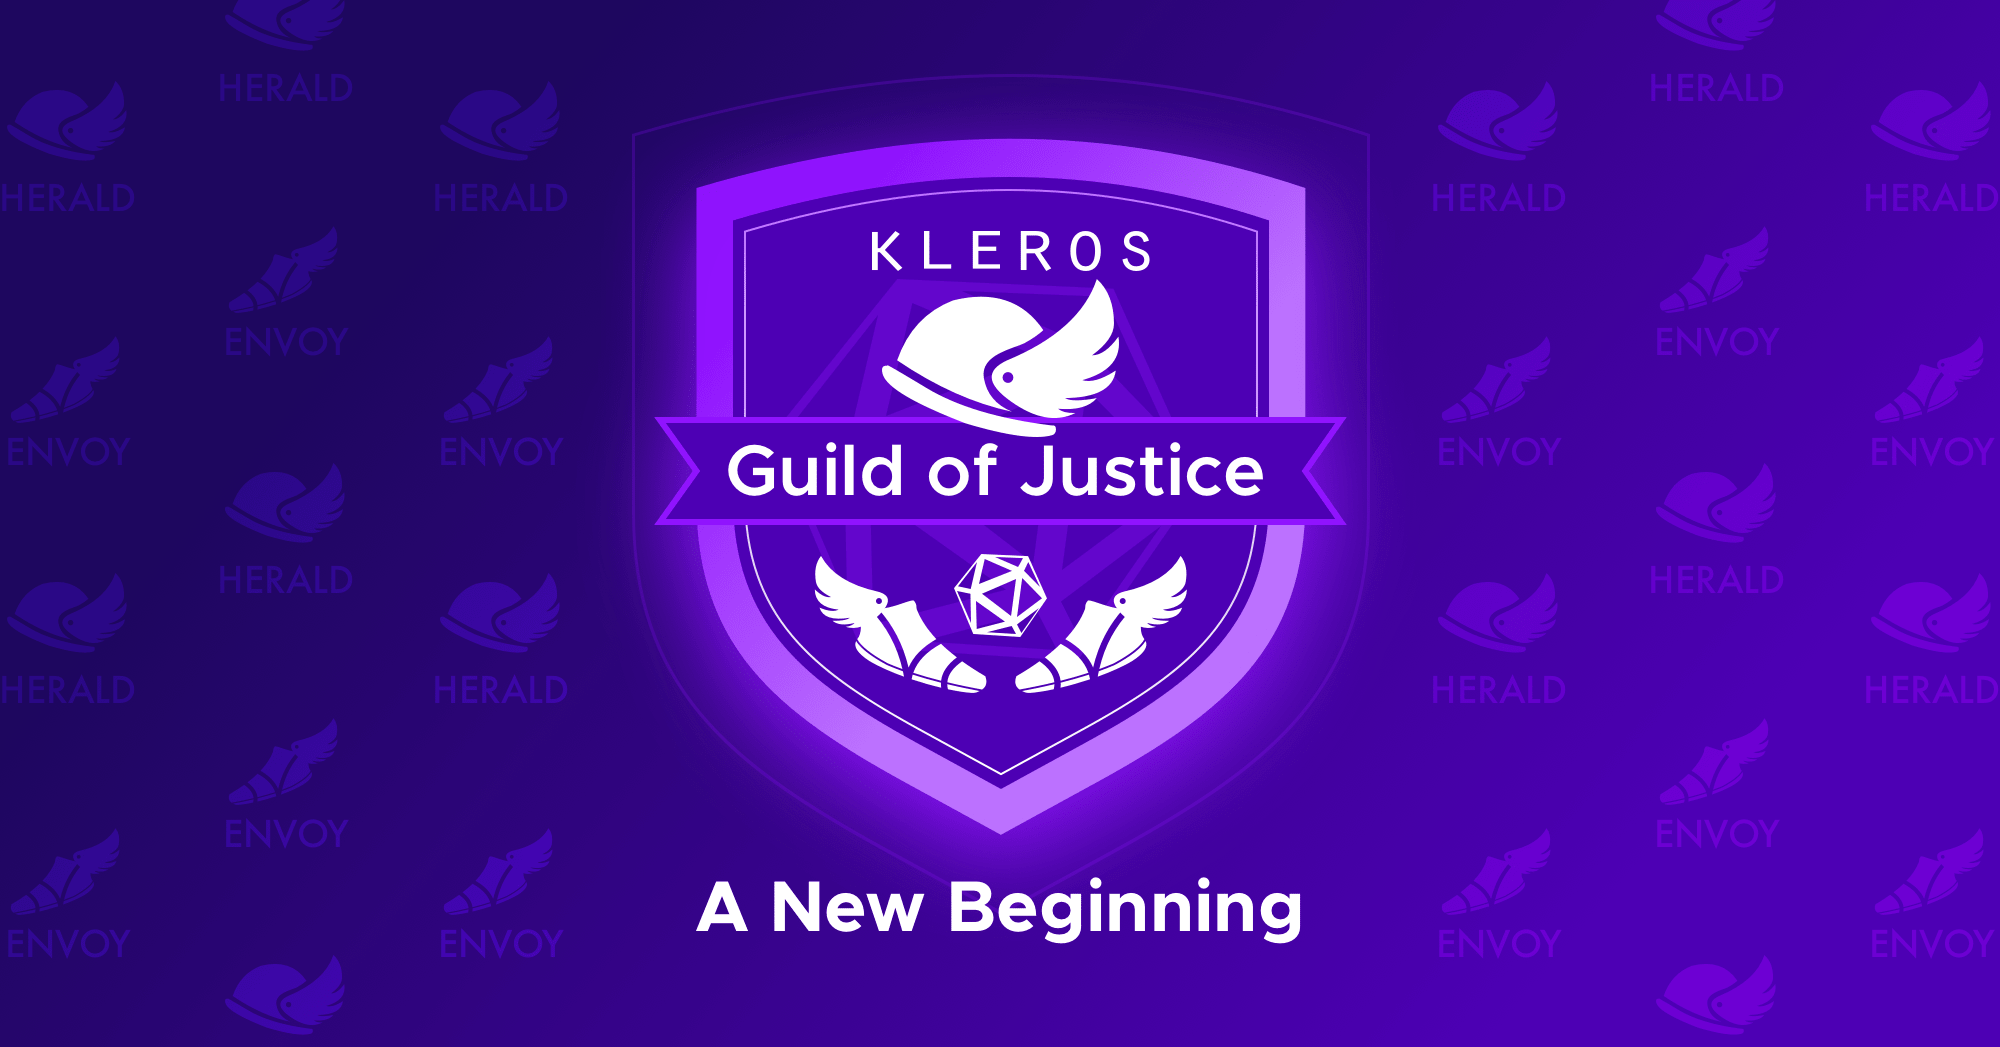 Kleros Guild of Justice - A New Beginning